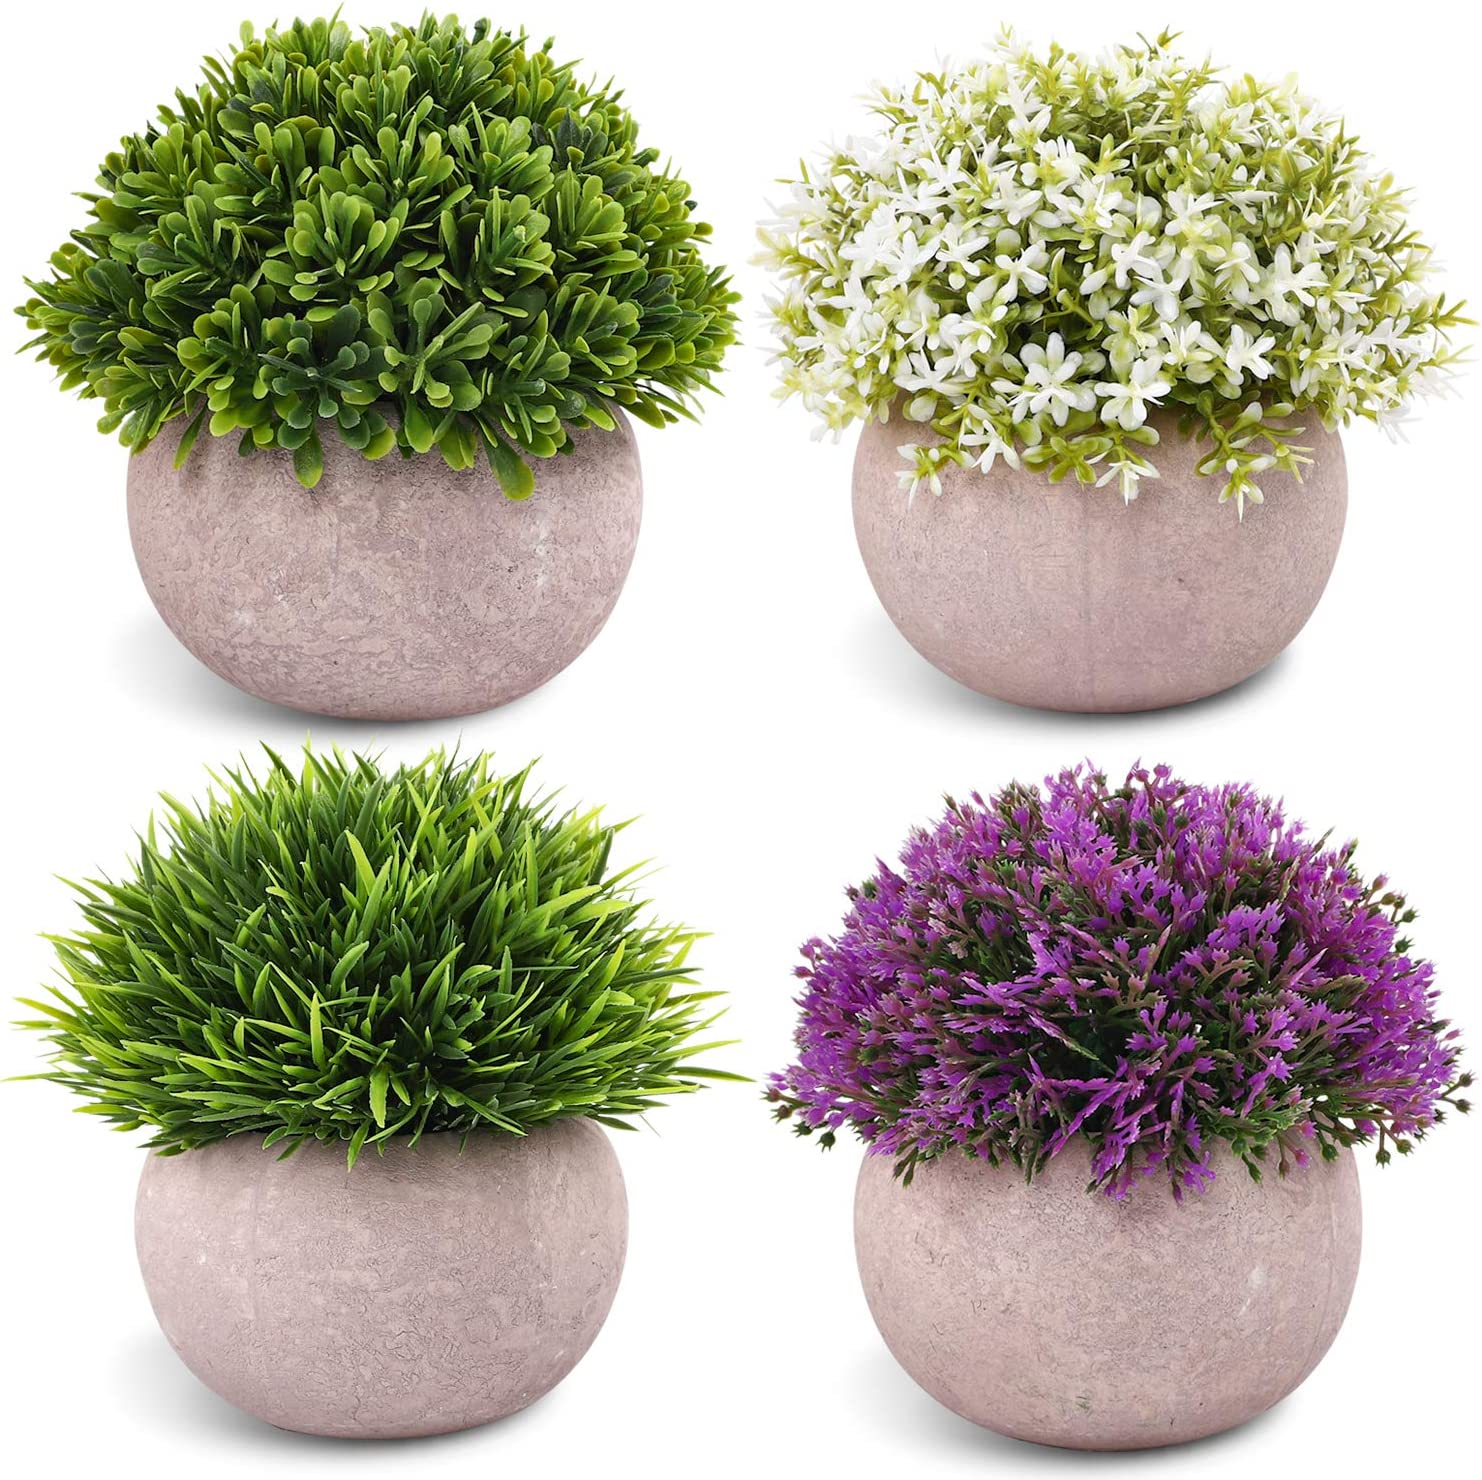 CEWOR 4 Packs Artificial Mini Potted Plants Plastic Faux Topiary Shrubs Fake Plants for Room Office Desk Decoration -